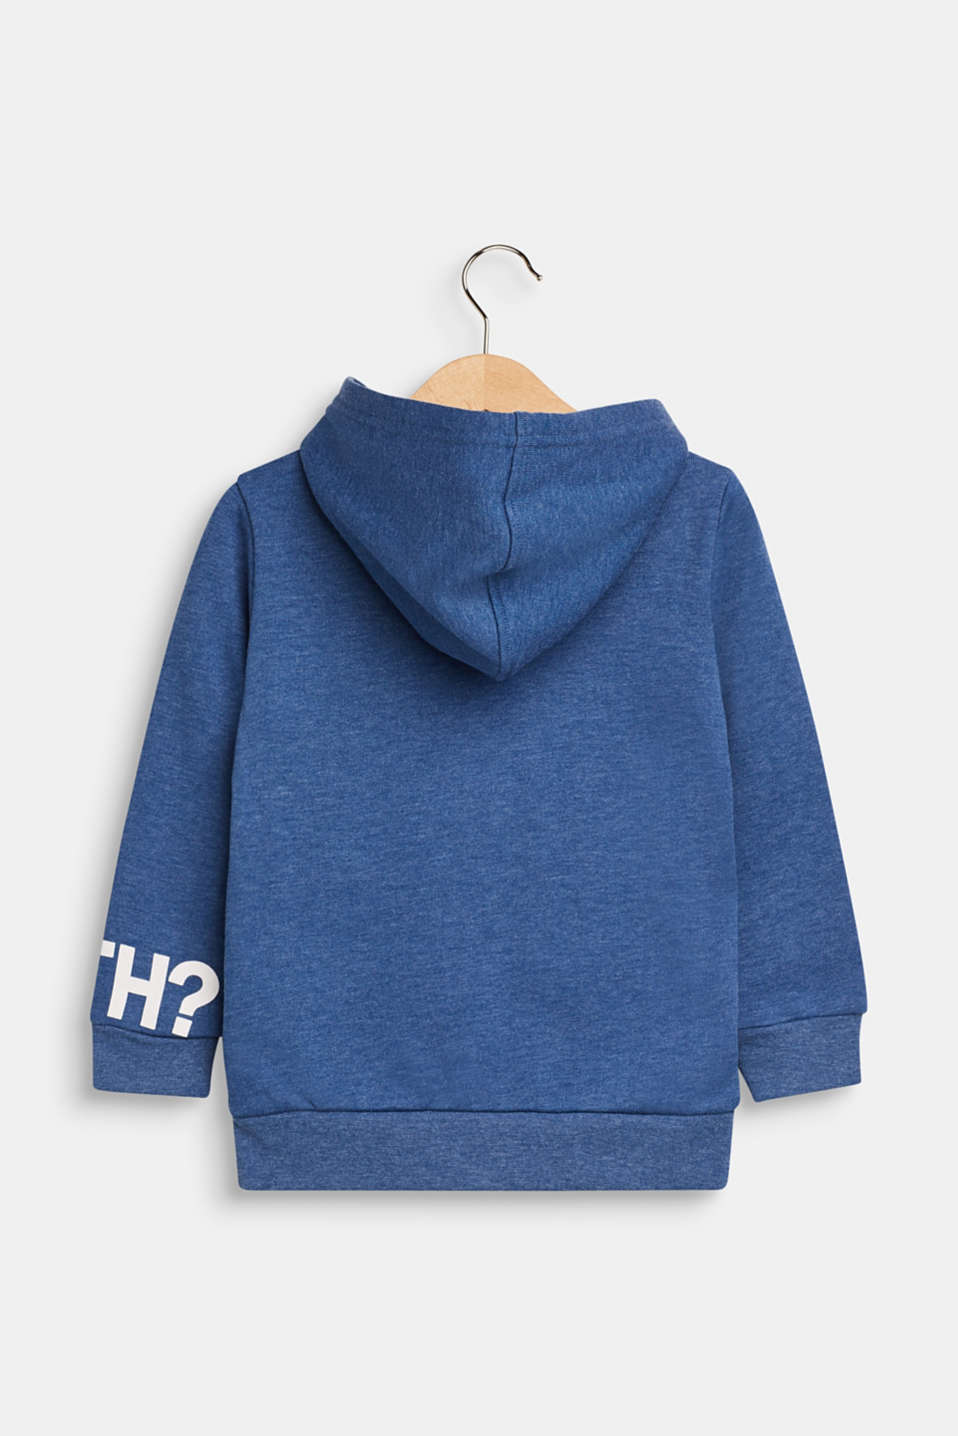 Sweatshirt cardigan with a print and a hood, indigo, detail image number 1